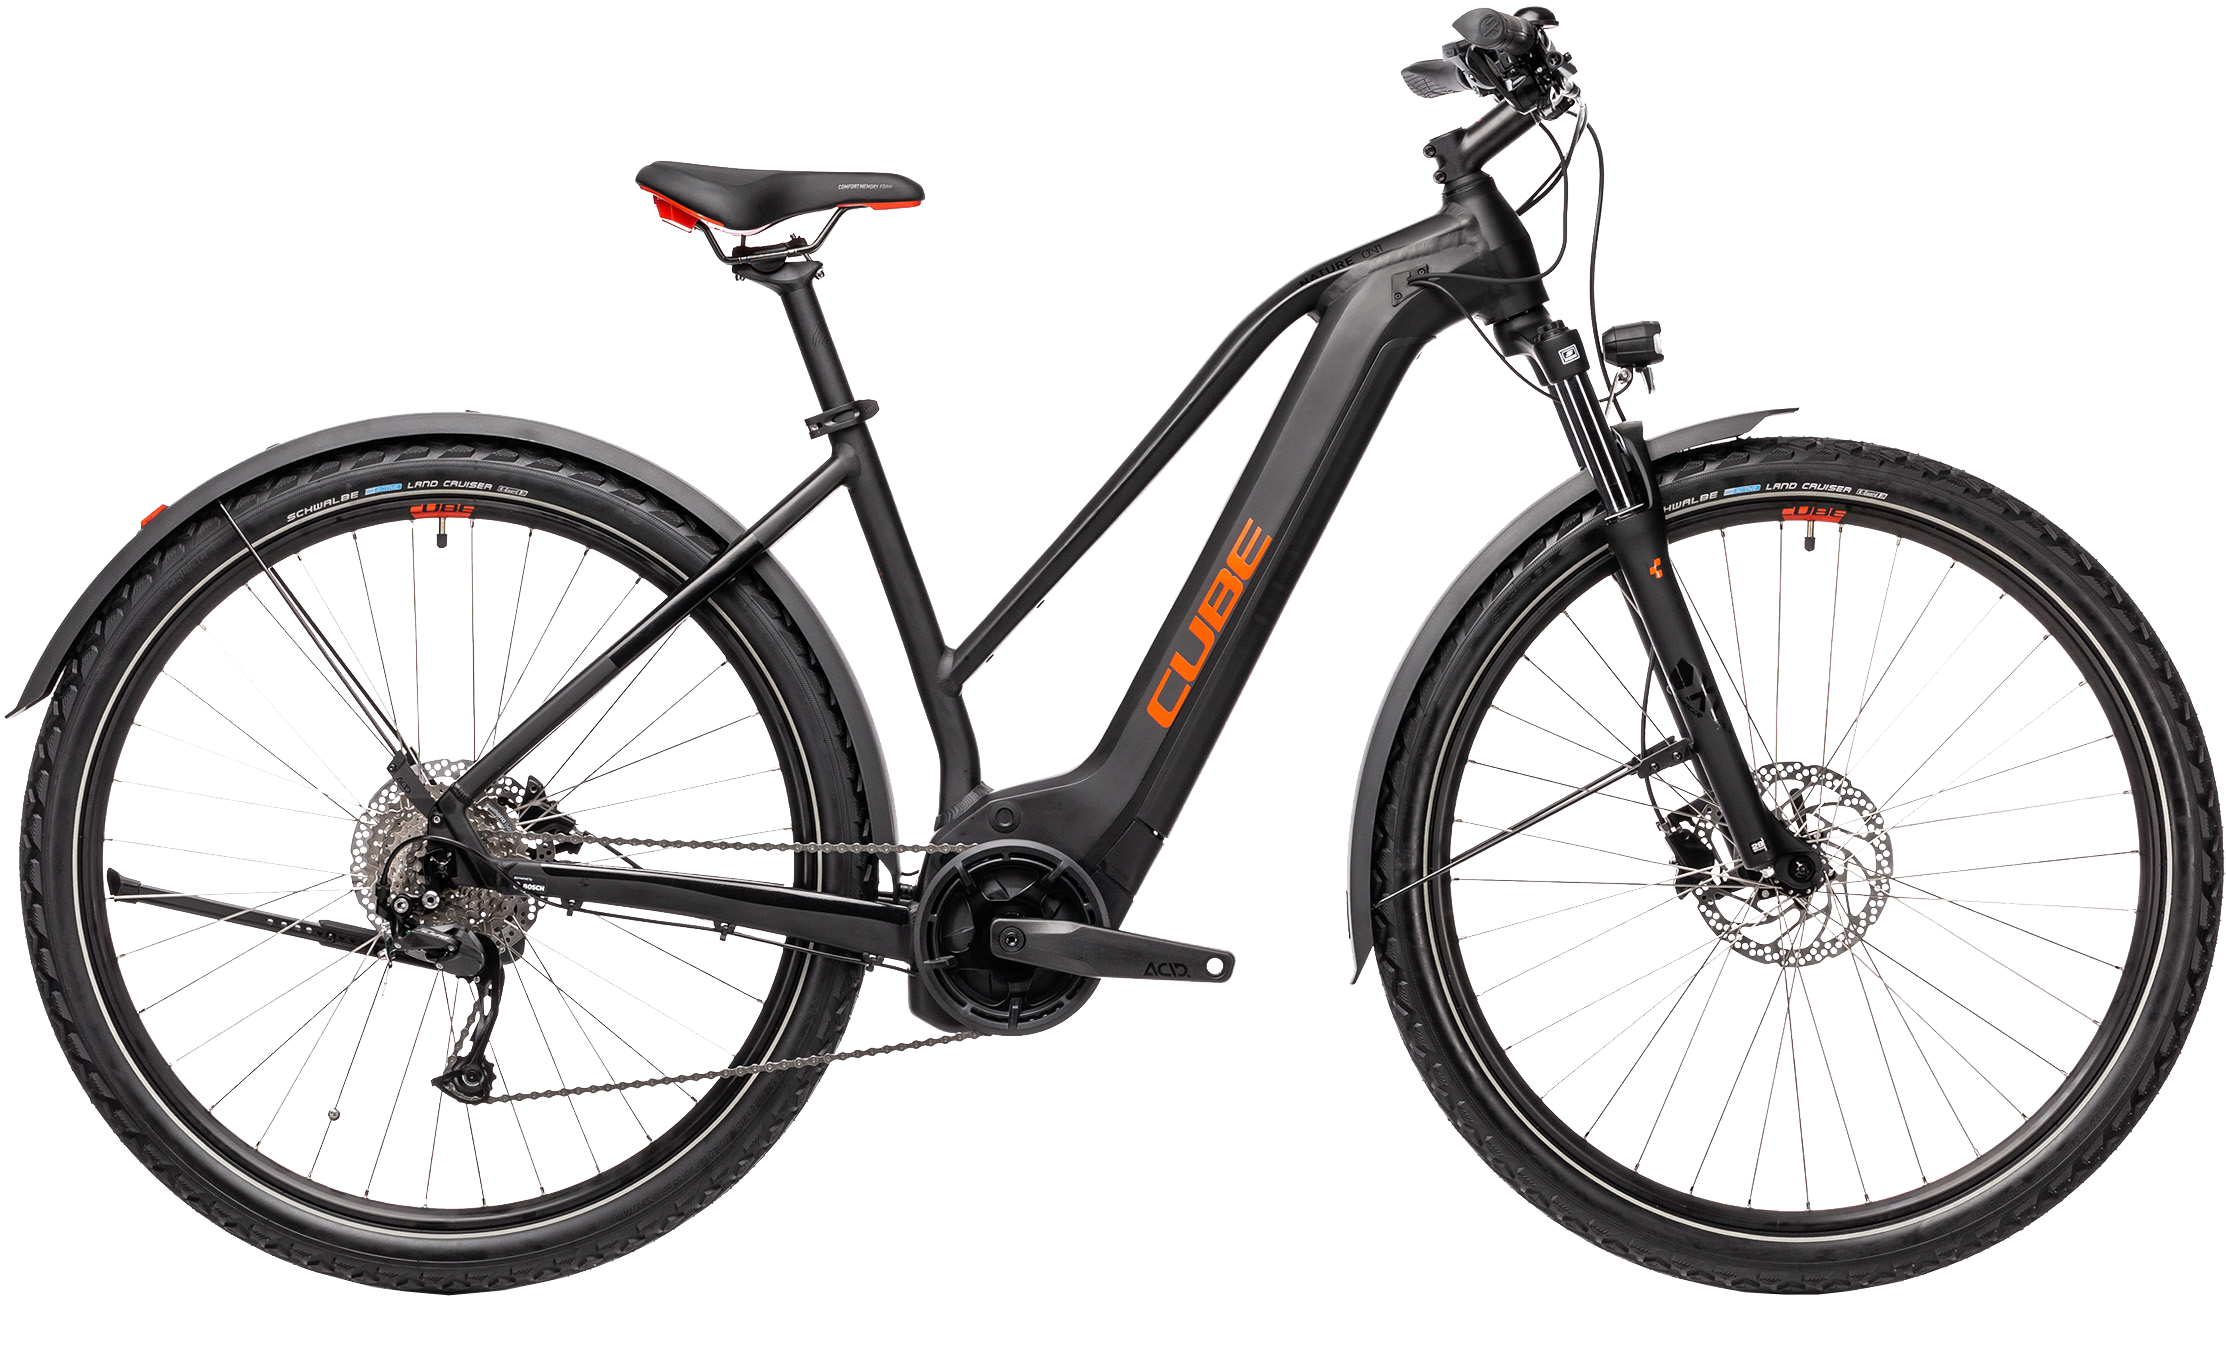 https://w8w5m3f8.stackpathcdn.com/20439/vtc-electrique-cube-nature-hybrid-one-allroad-500-ou-625wh-cadre-mixte.jpg